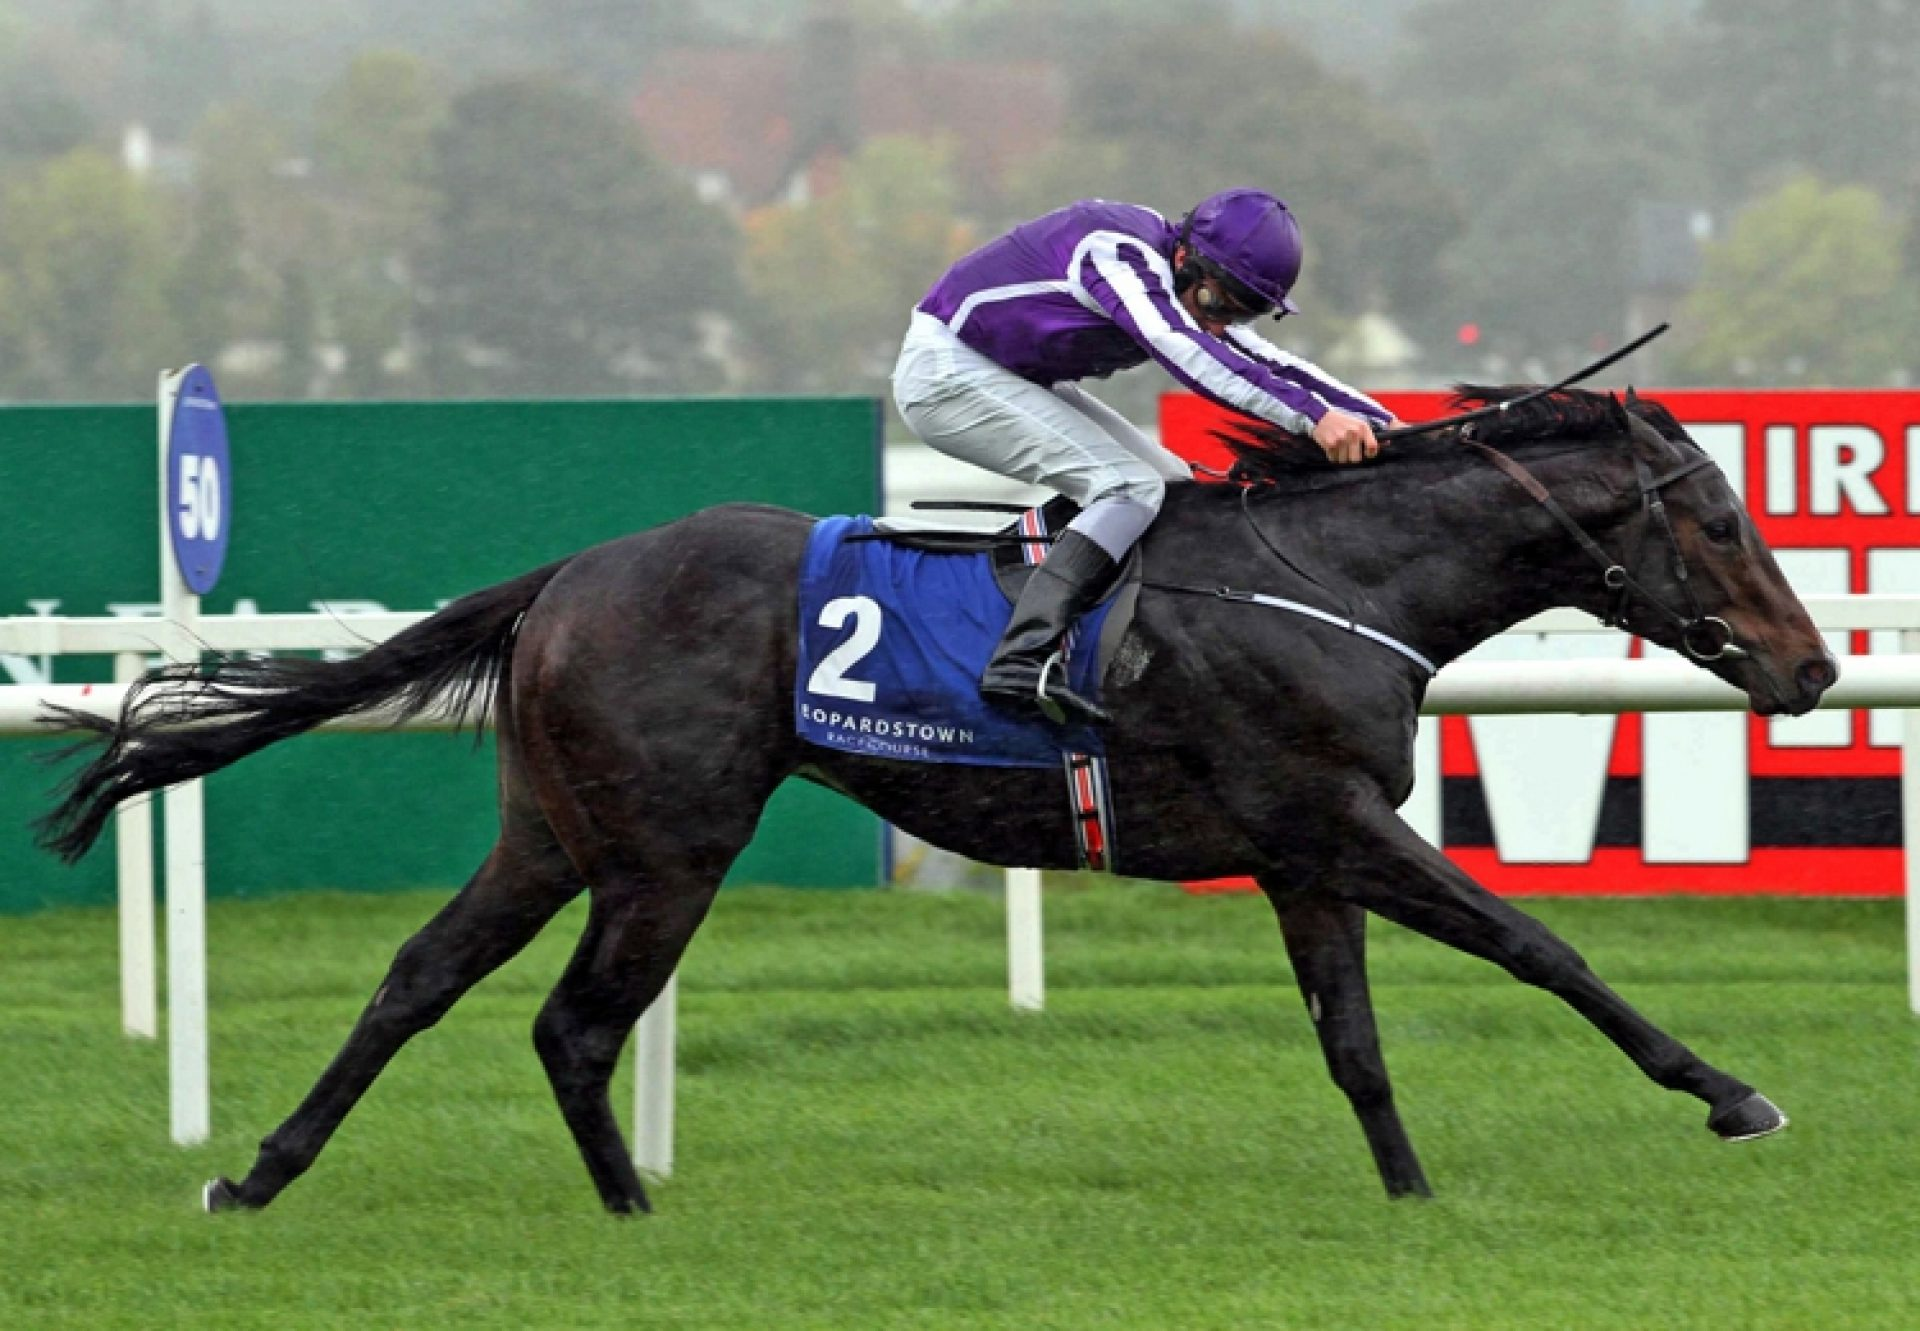 Craftsman (Mastercraftsman) winning the Gr.3 Killavullan Stakes at Leopardstown